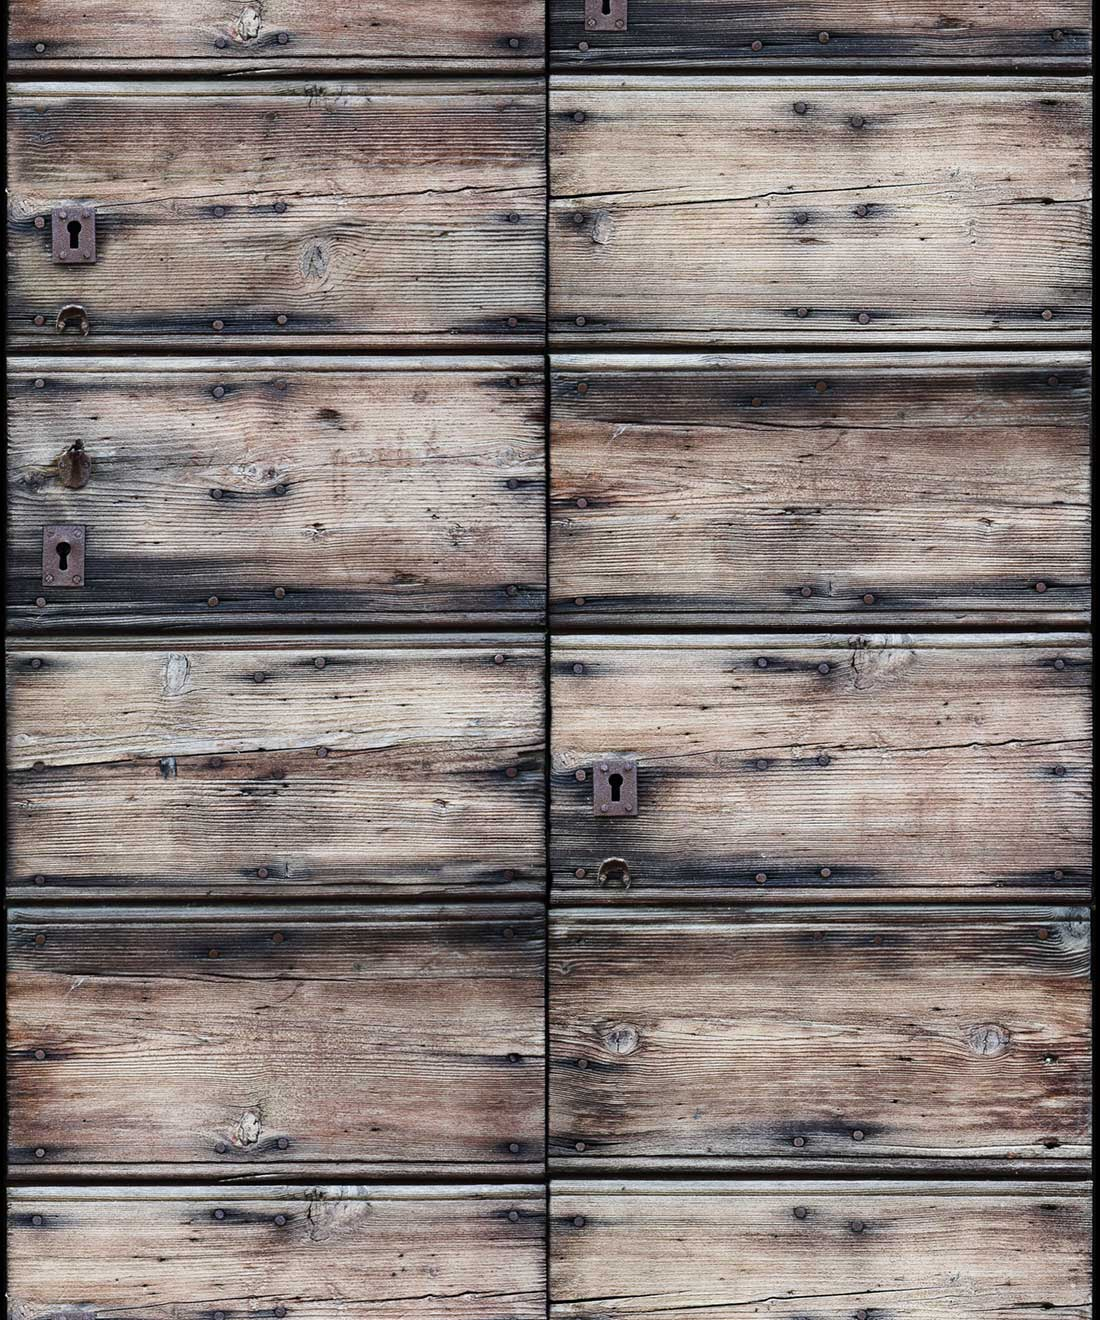 Timber & Nails Wallpaper